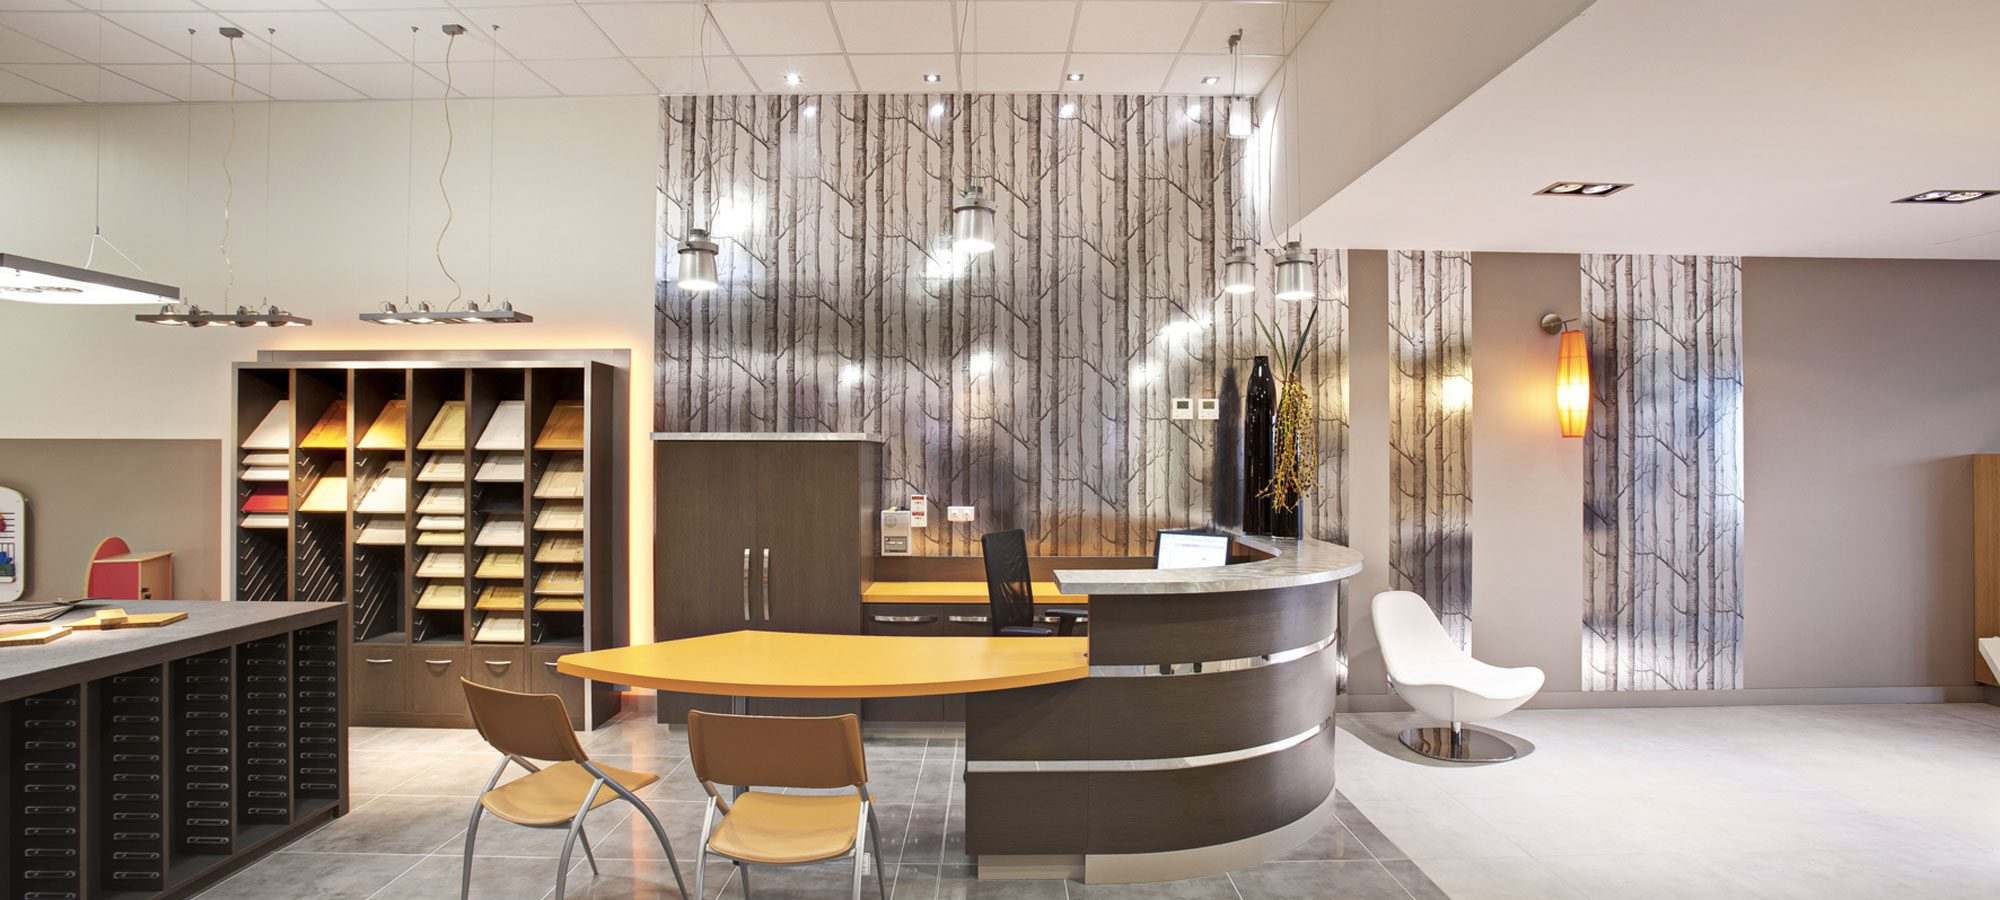 banque-accueil-magasin